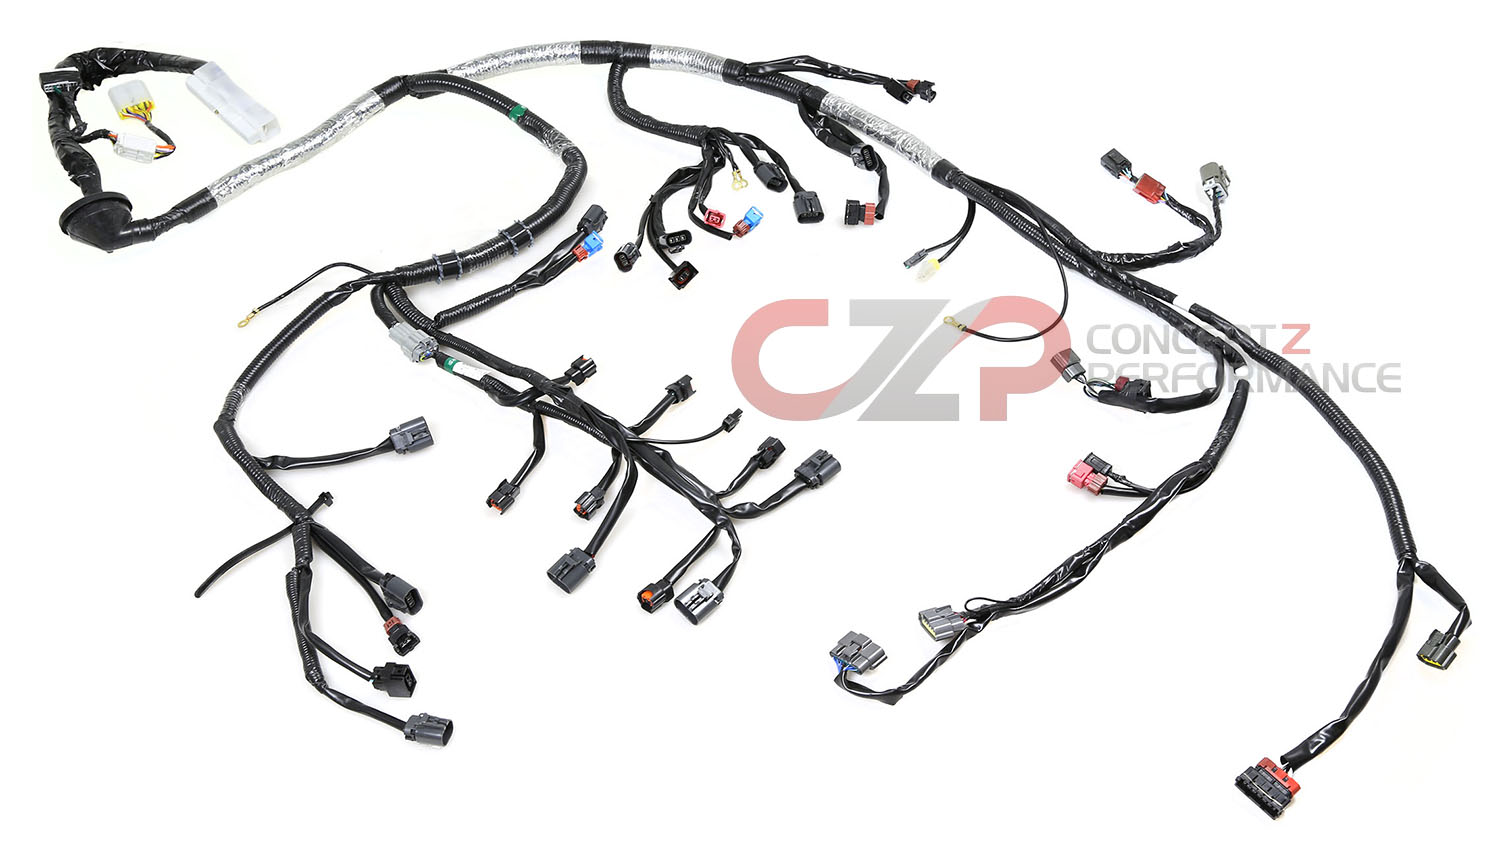 main wiring specialties efi engine wiring harness w quick disconnect 2004 Nissan Maxima at crackthecode.co